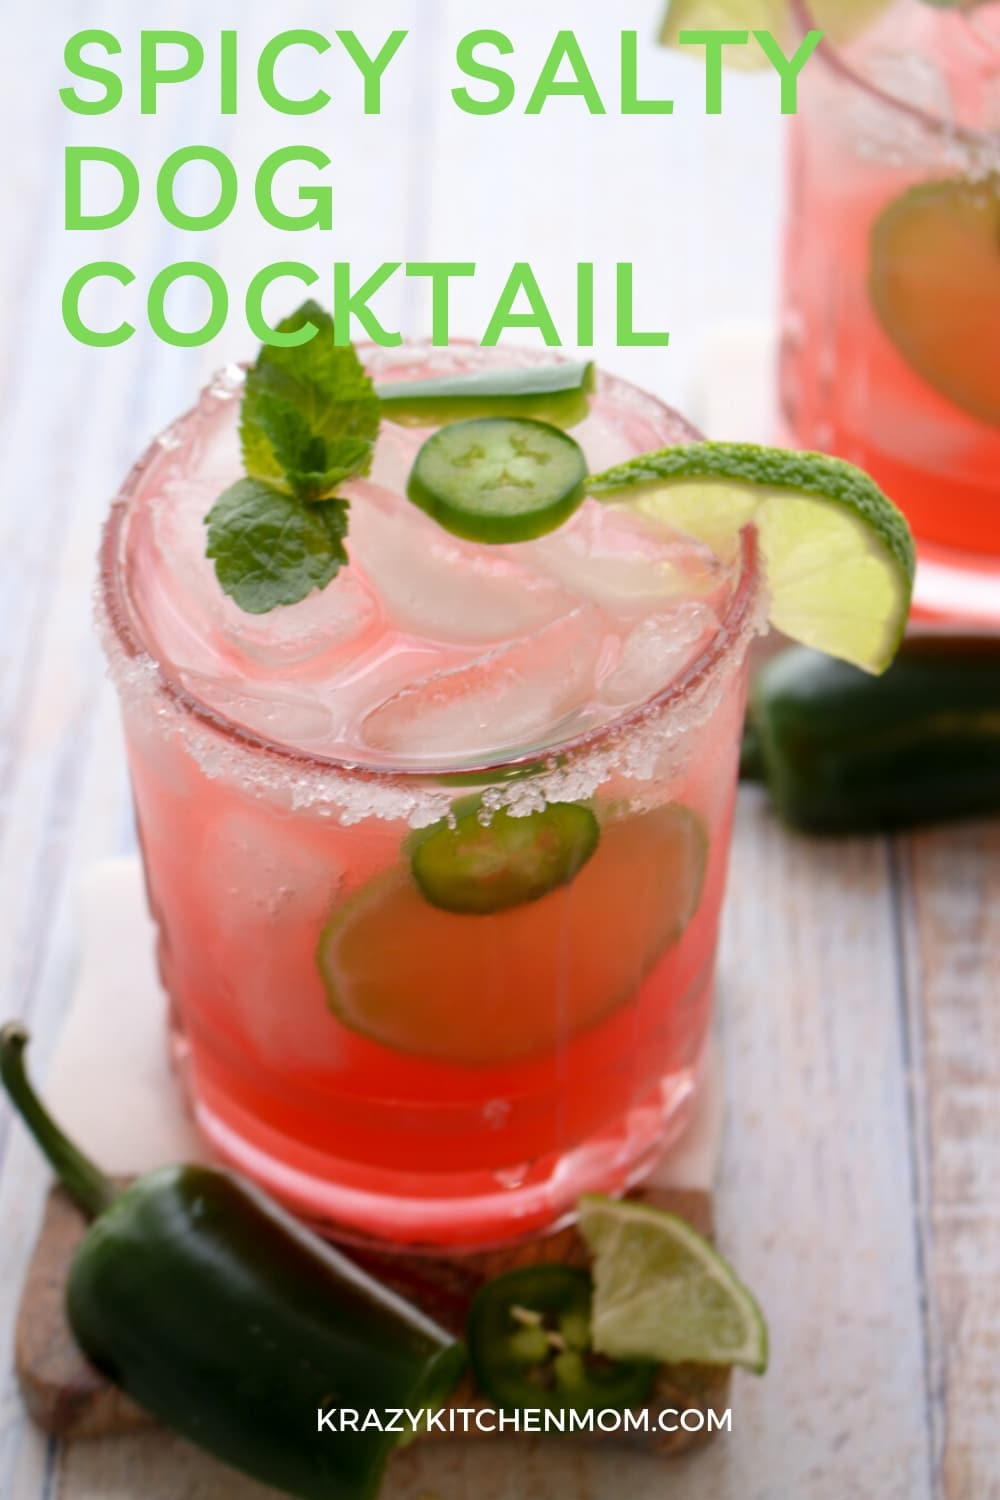 If you like a tart, sweet, spicy, refreshing cocktail, look no further. The Spicy Salty Dog Cocktail is made with vodka, pink grapefruit juice, jalapenos and splash of lime - cheers! via @krazykitchenmom